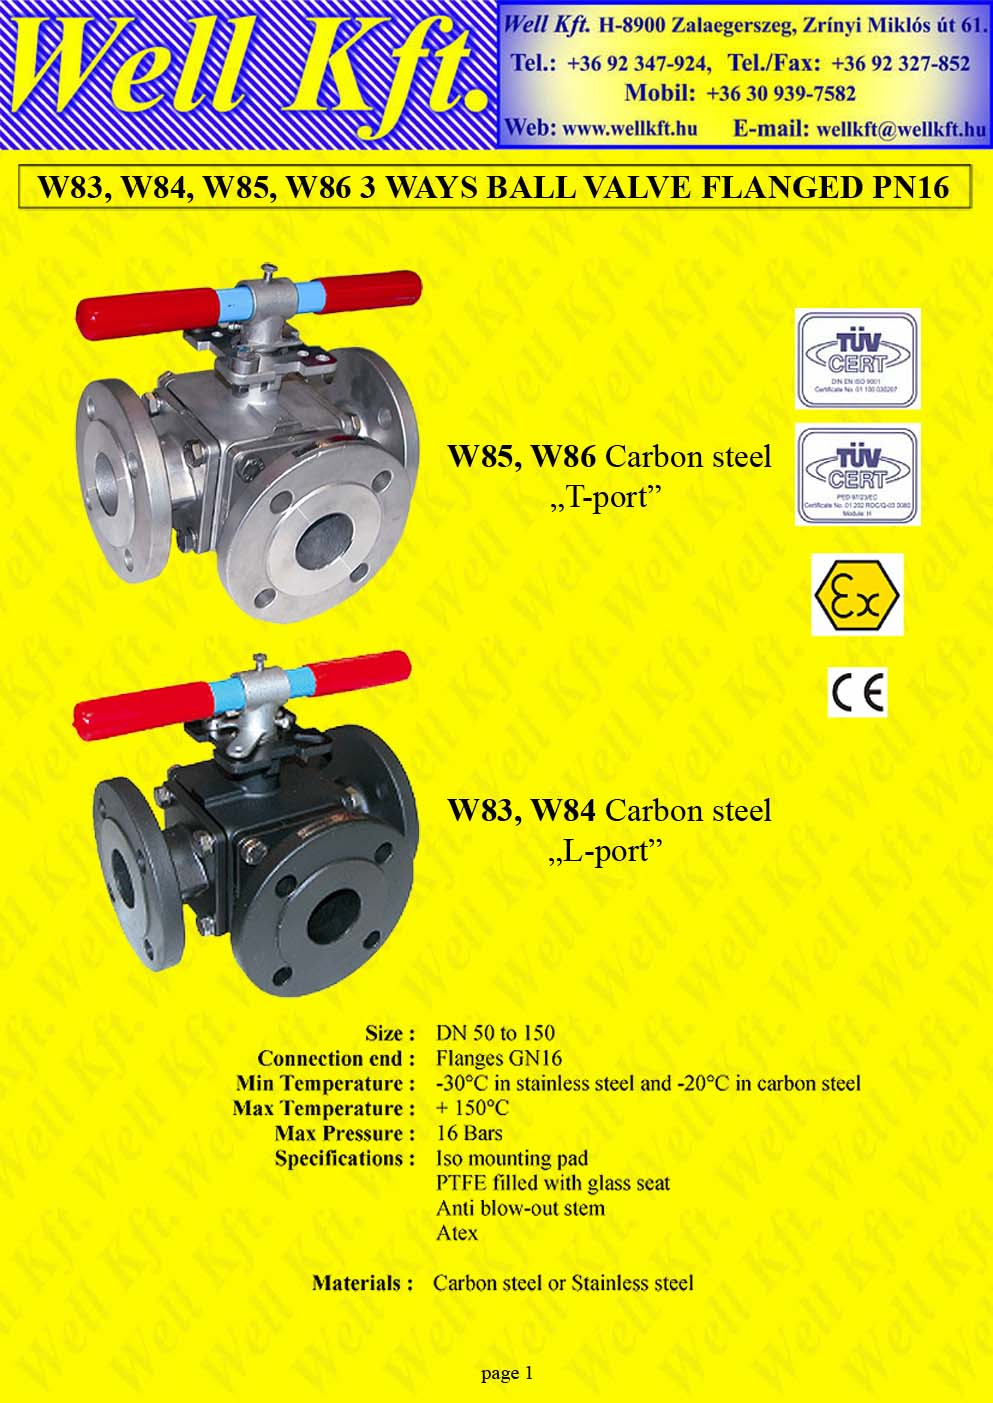 3 ways ball valve stainless steel, carbon steel flanged PN 16 (1.)